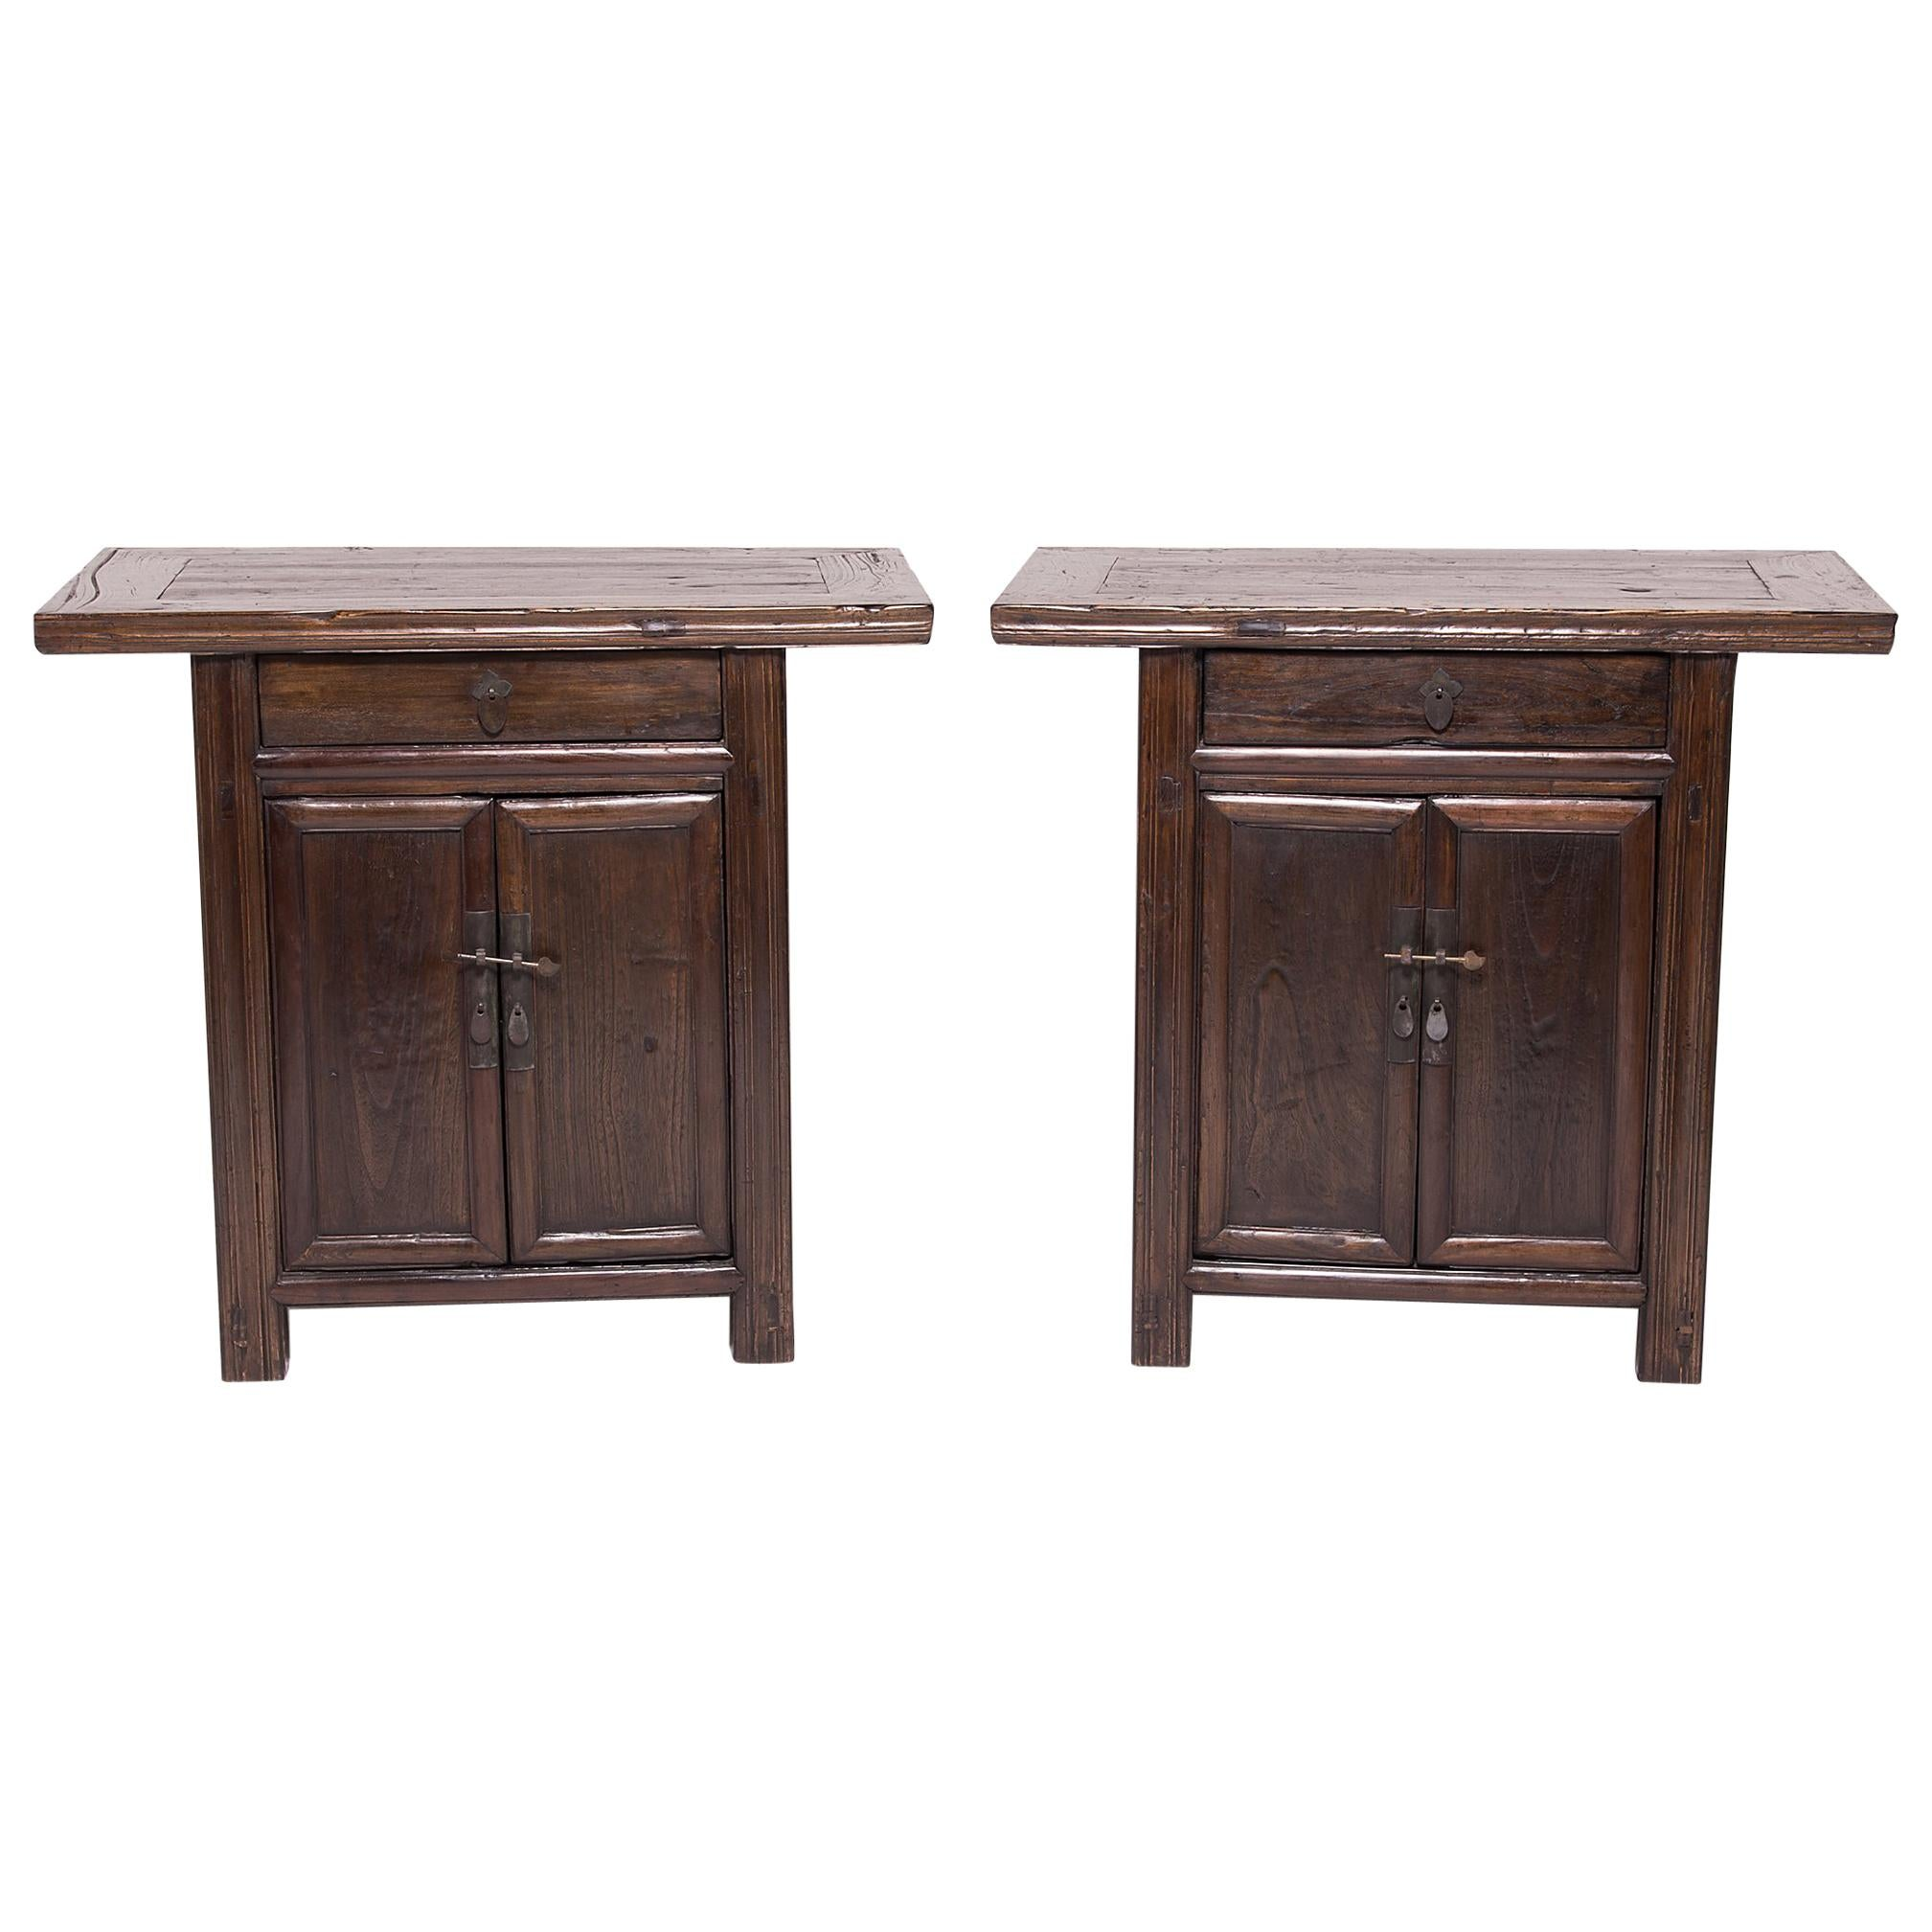 Pair of Chinese Two-Door Chestnut Cabinets, c. 1850